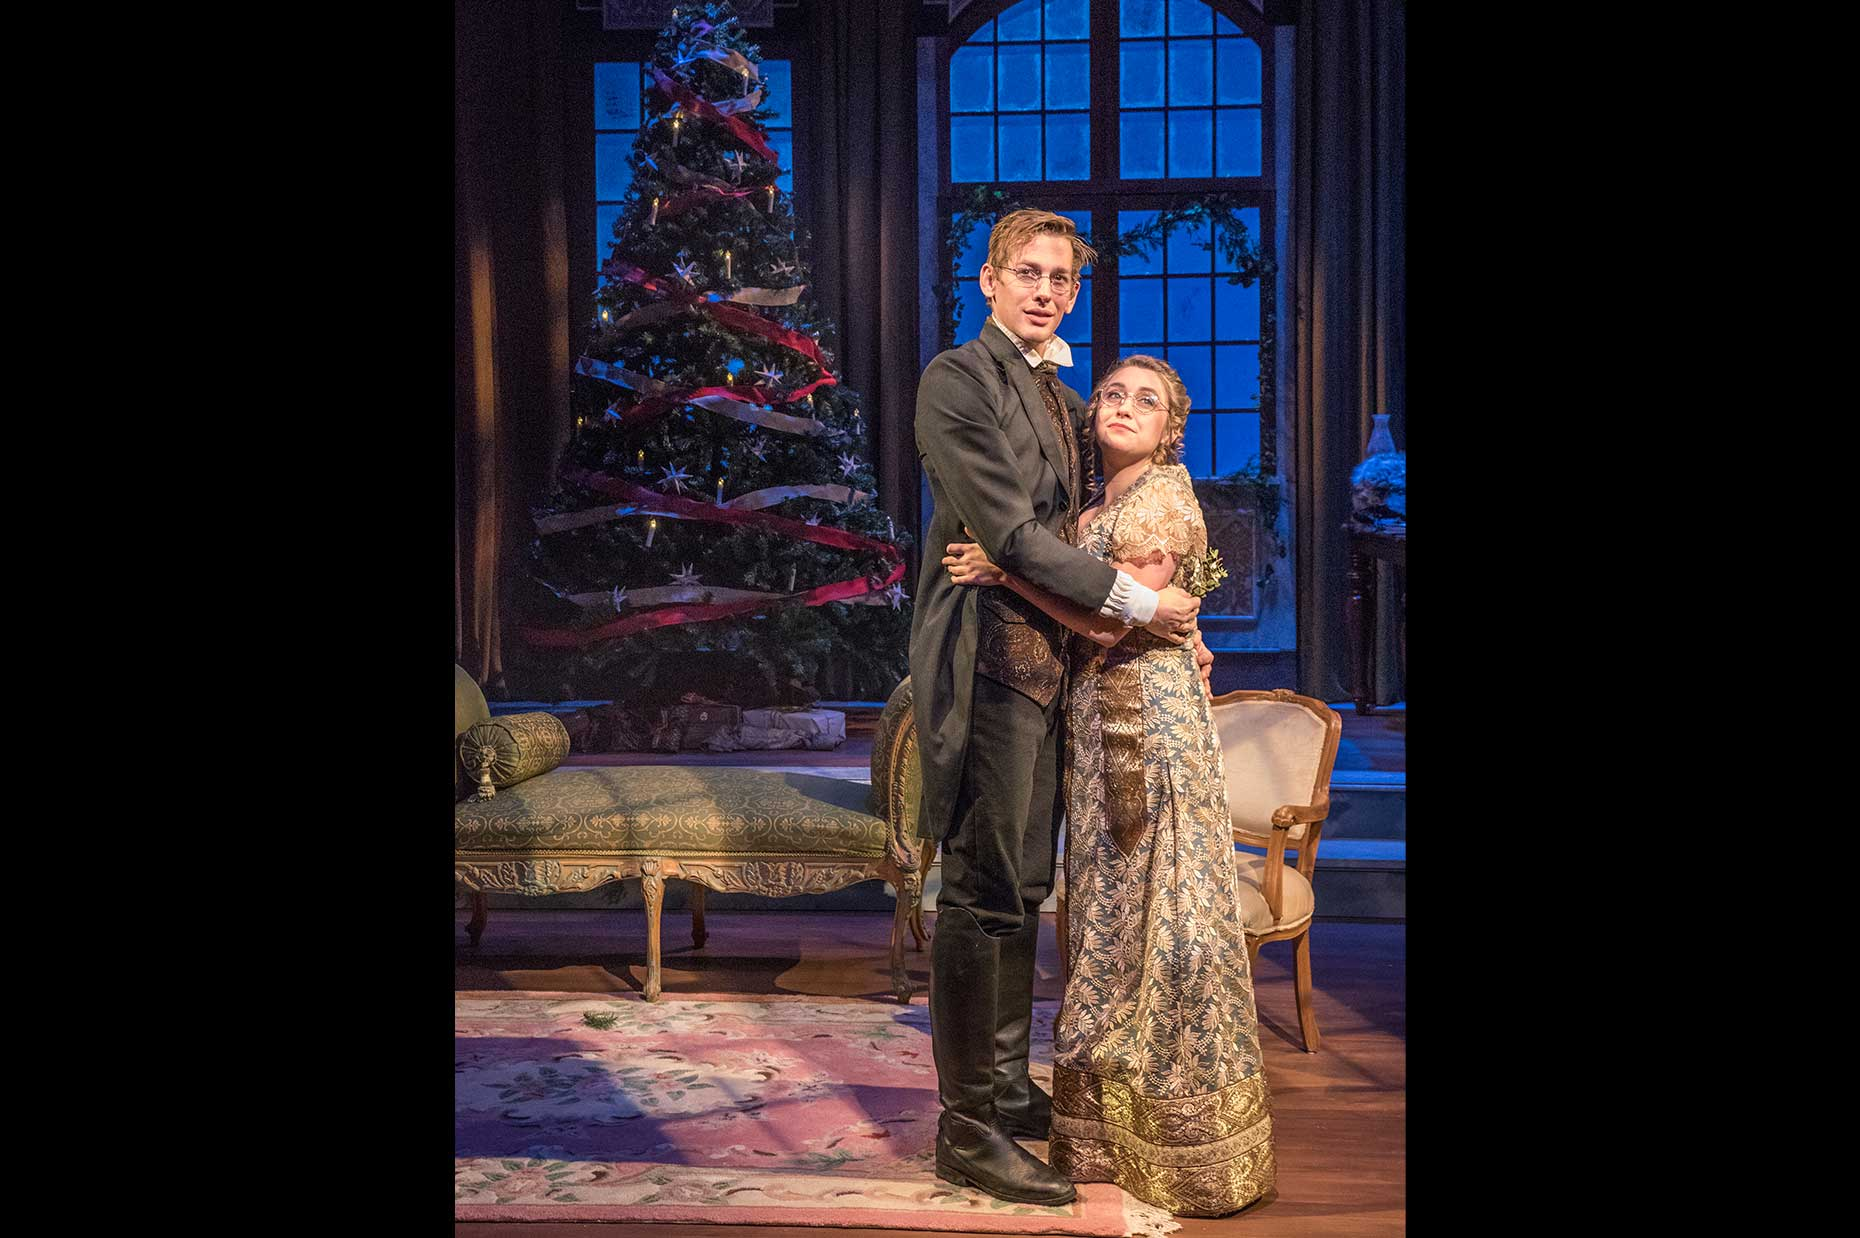 rick-barbour-director-miss-bennet-christmas-at-pemberley-boulder-ensemble-theatre-02